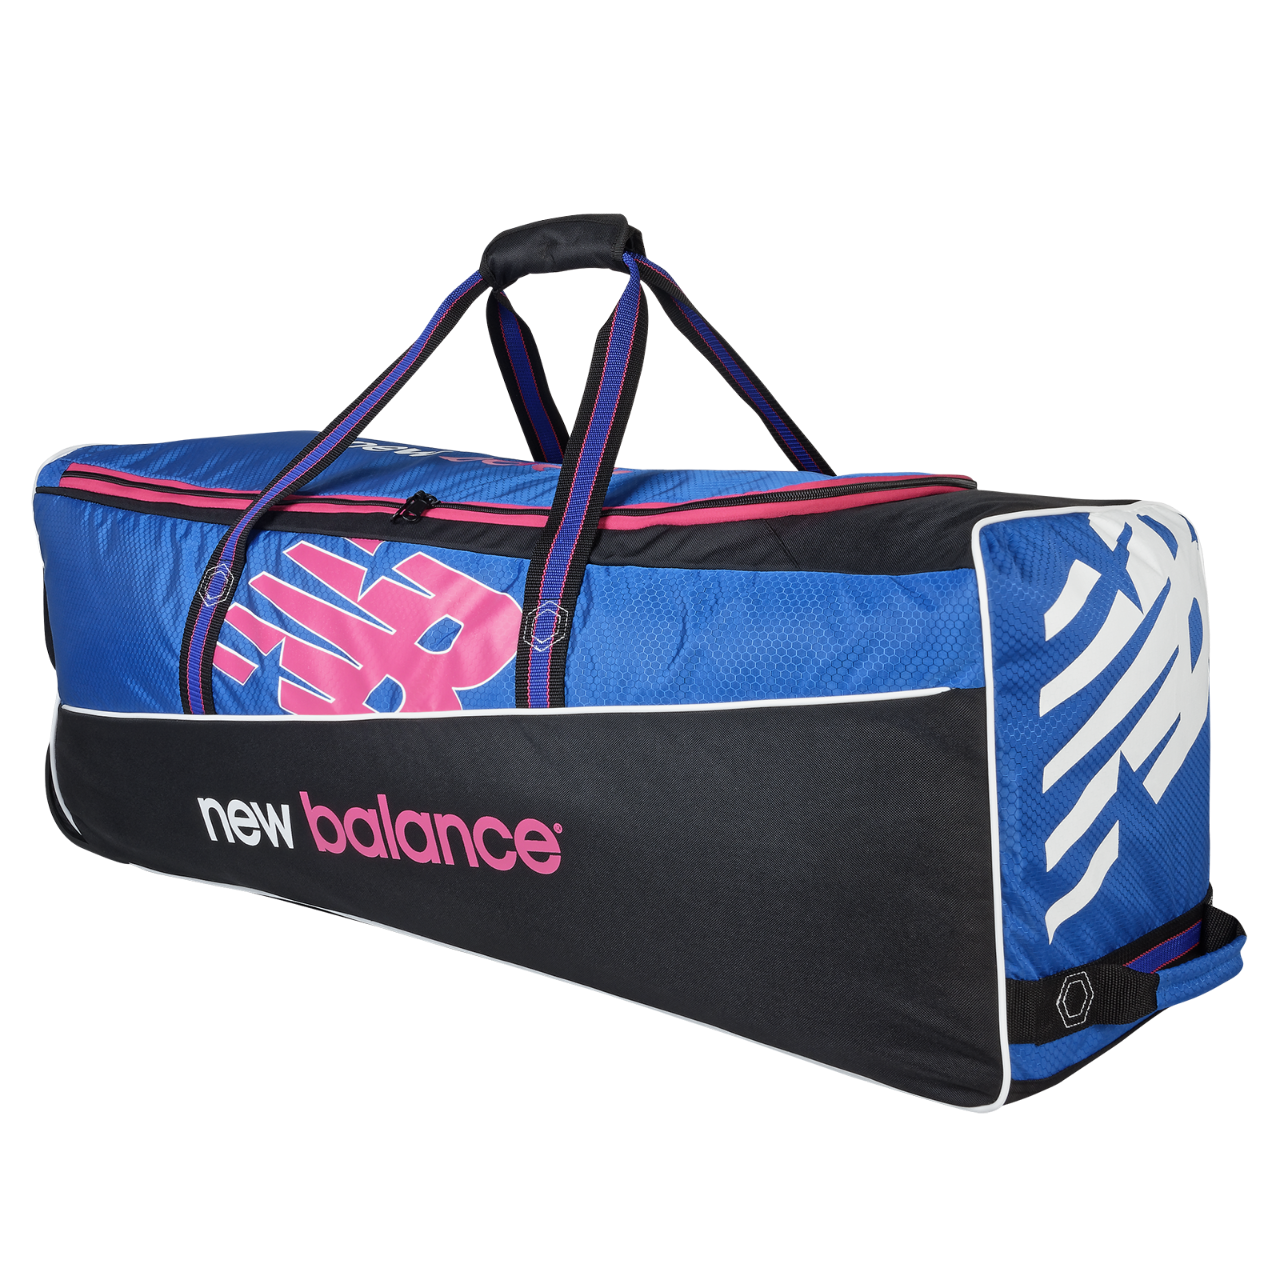 2020 New Balance Burn 670 Wheelie Cricket Bag